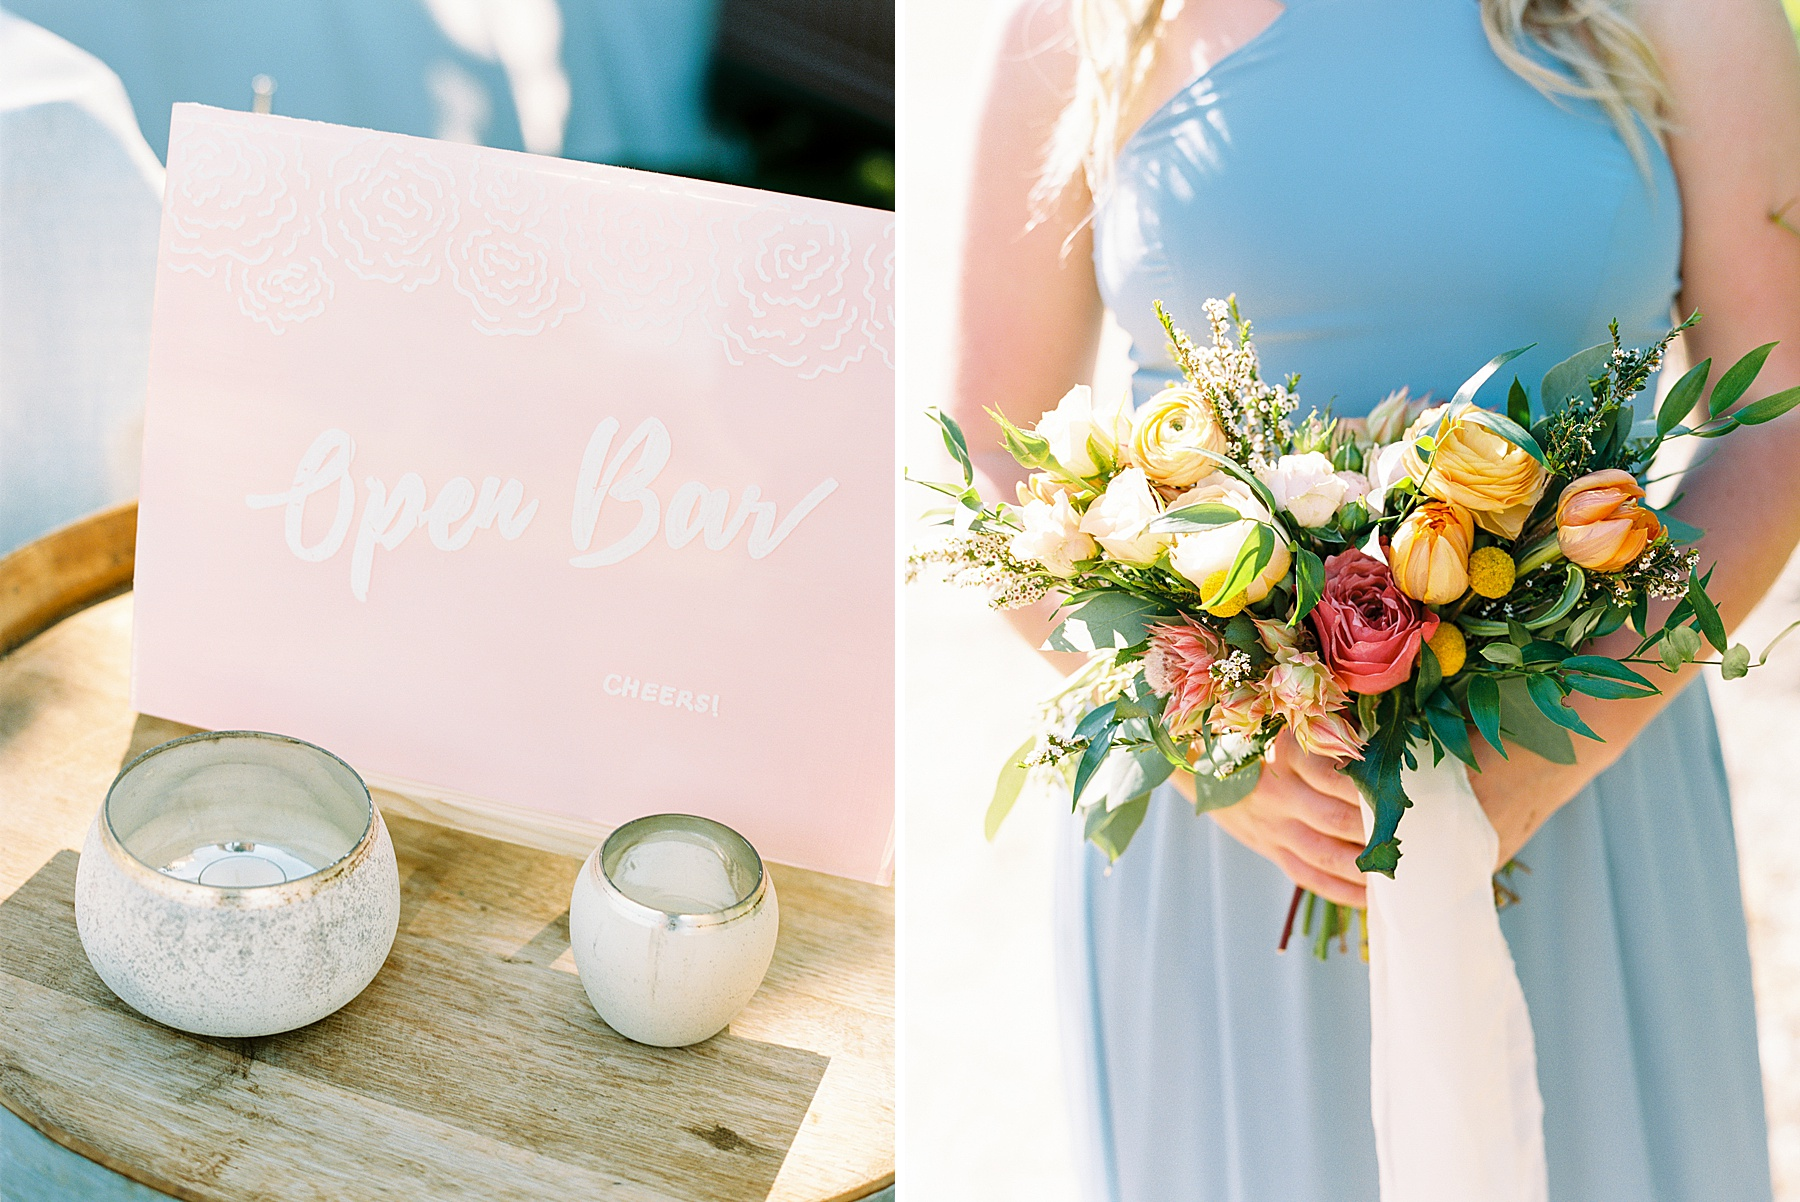 Wente Wedding with A Tropical Color Palette - Ashley & Mike - Featured on Inspired by This - Ashley Baumgartner_0037.jpg